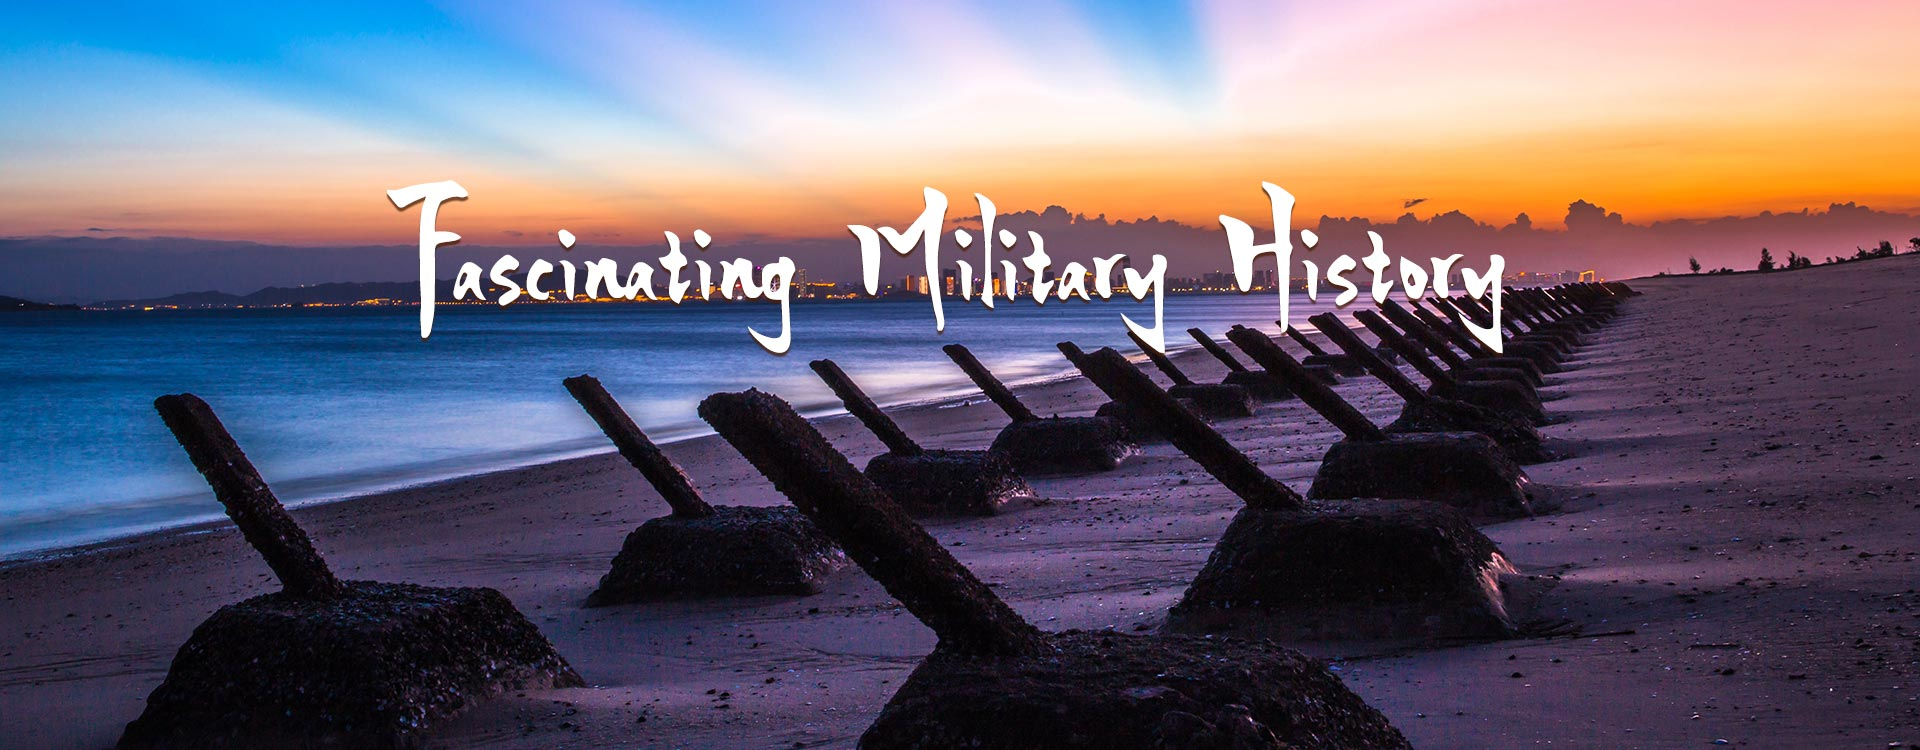 Fascinating Military History